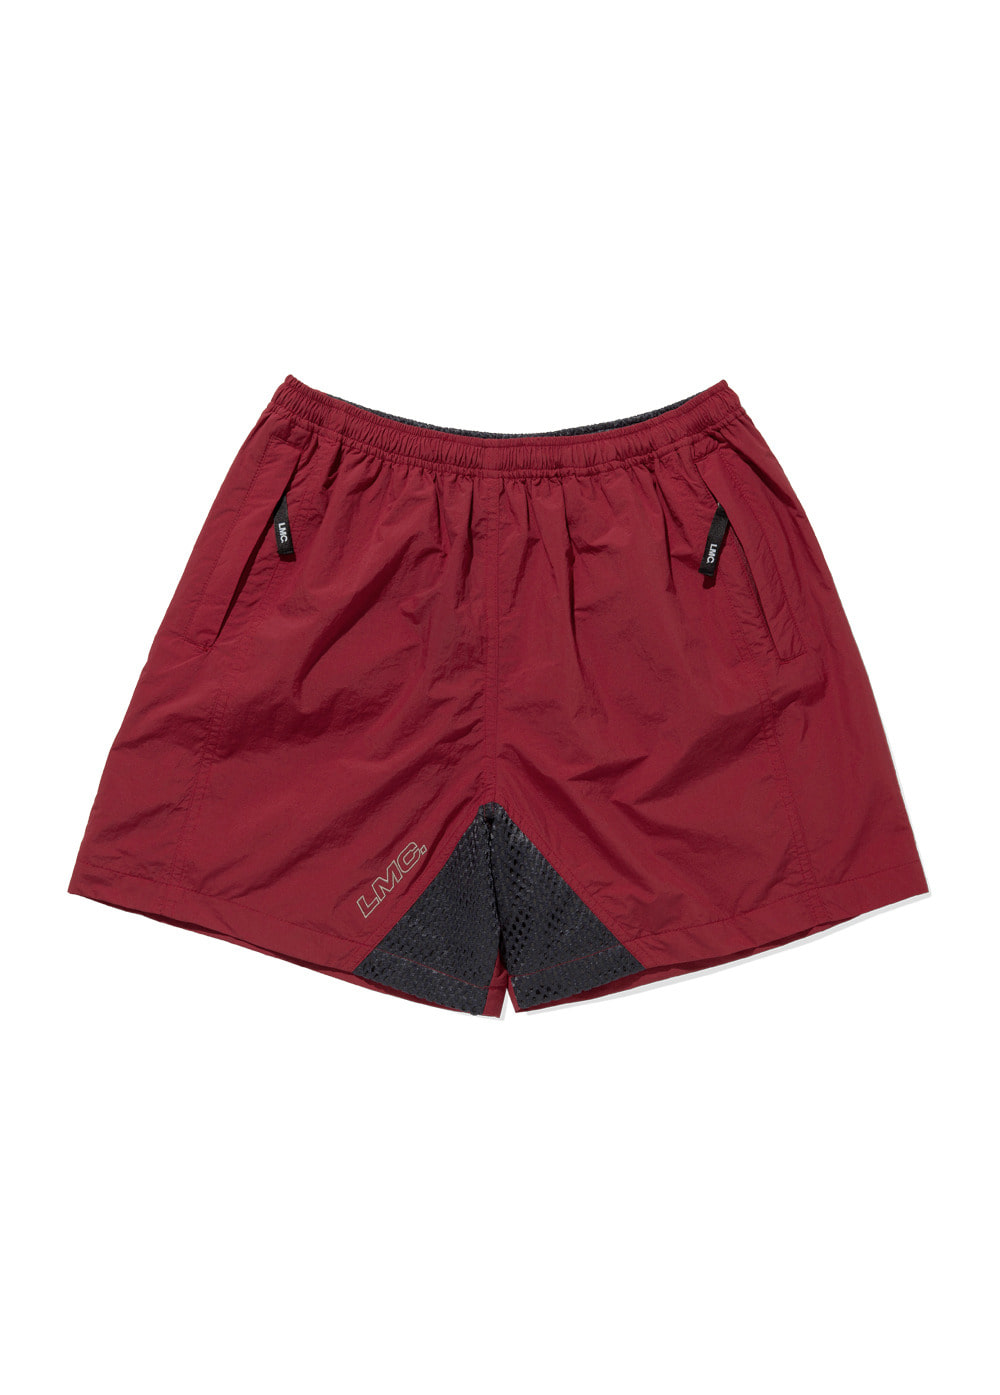 LMC MMWB TRACK SUIT SHORTS red